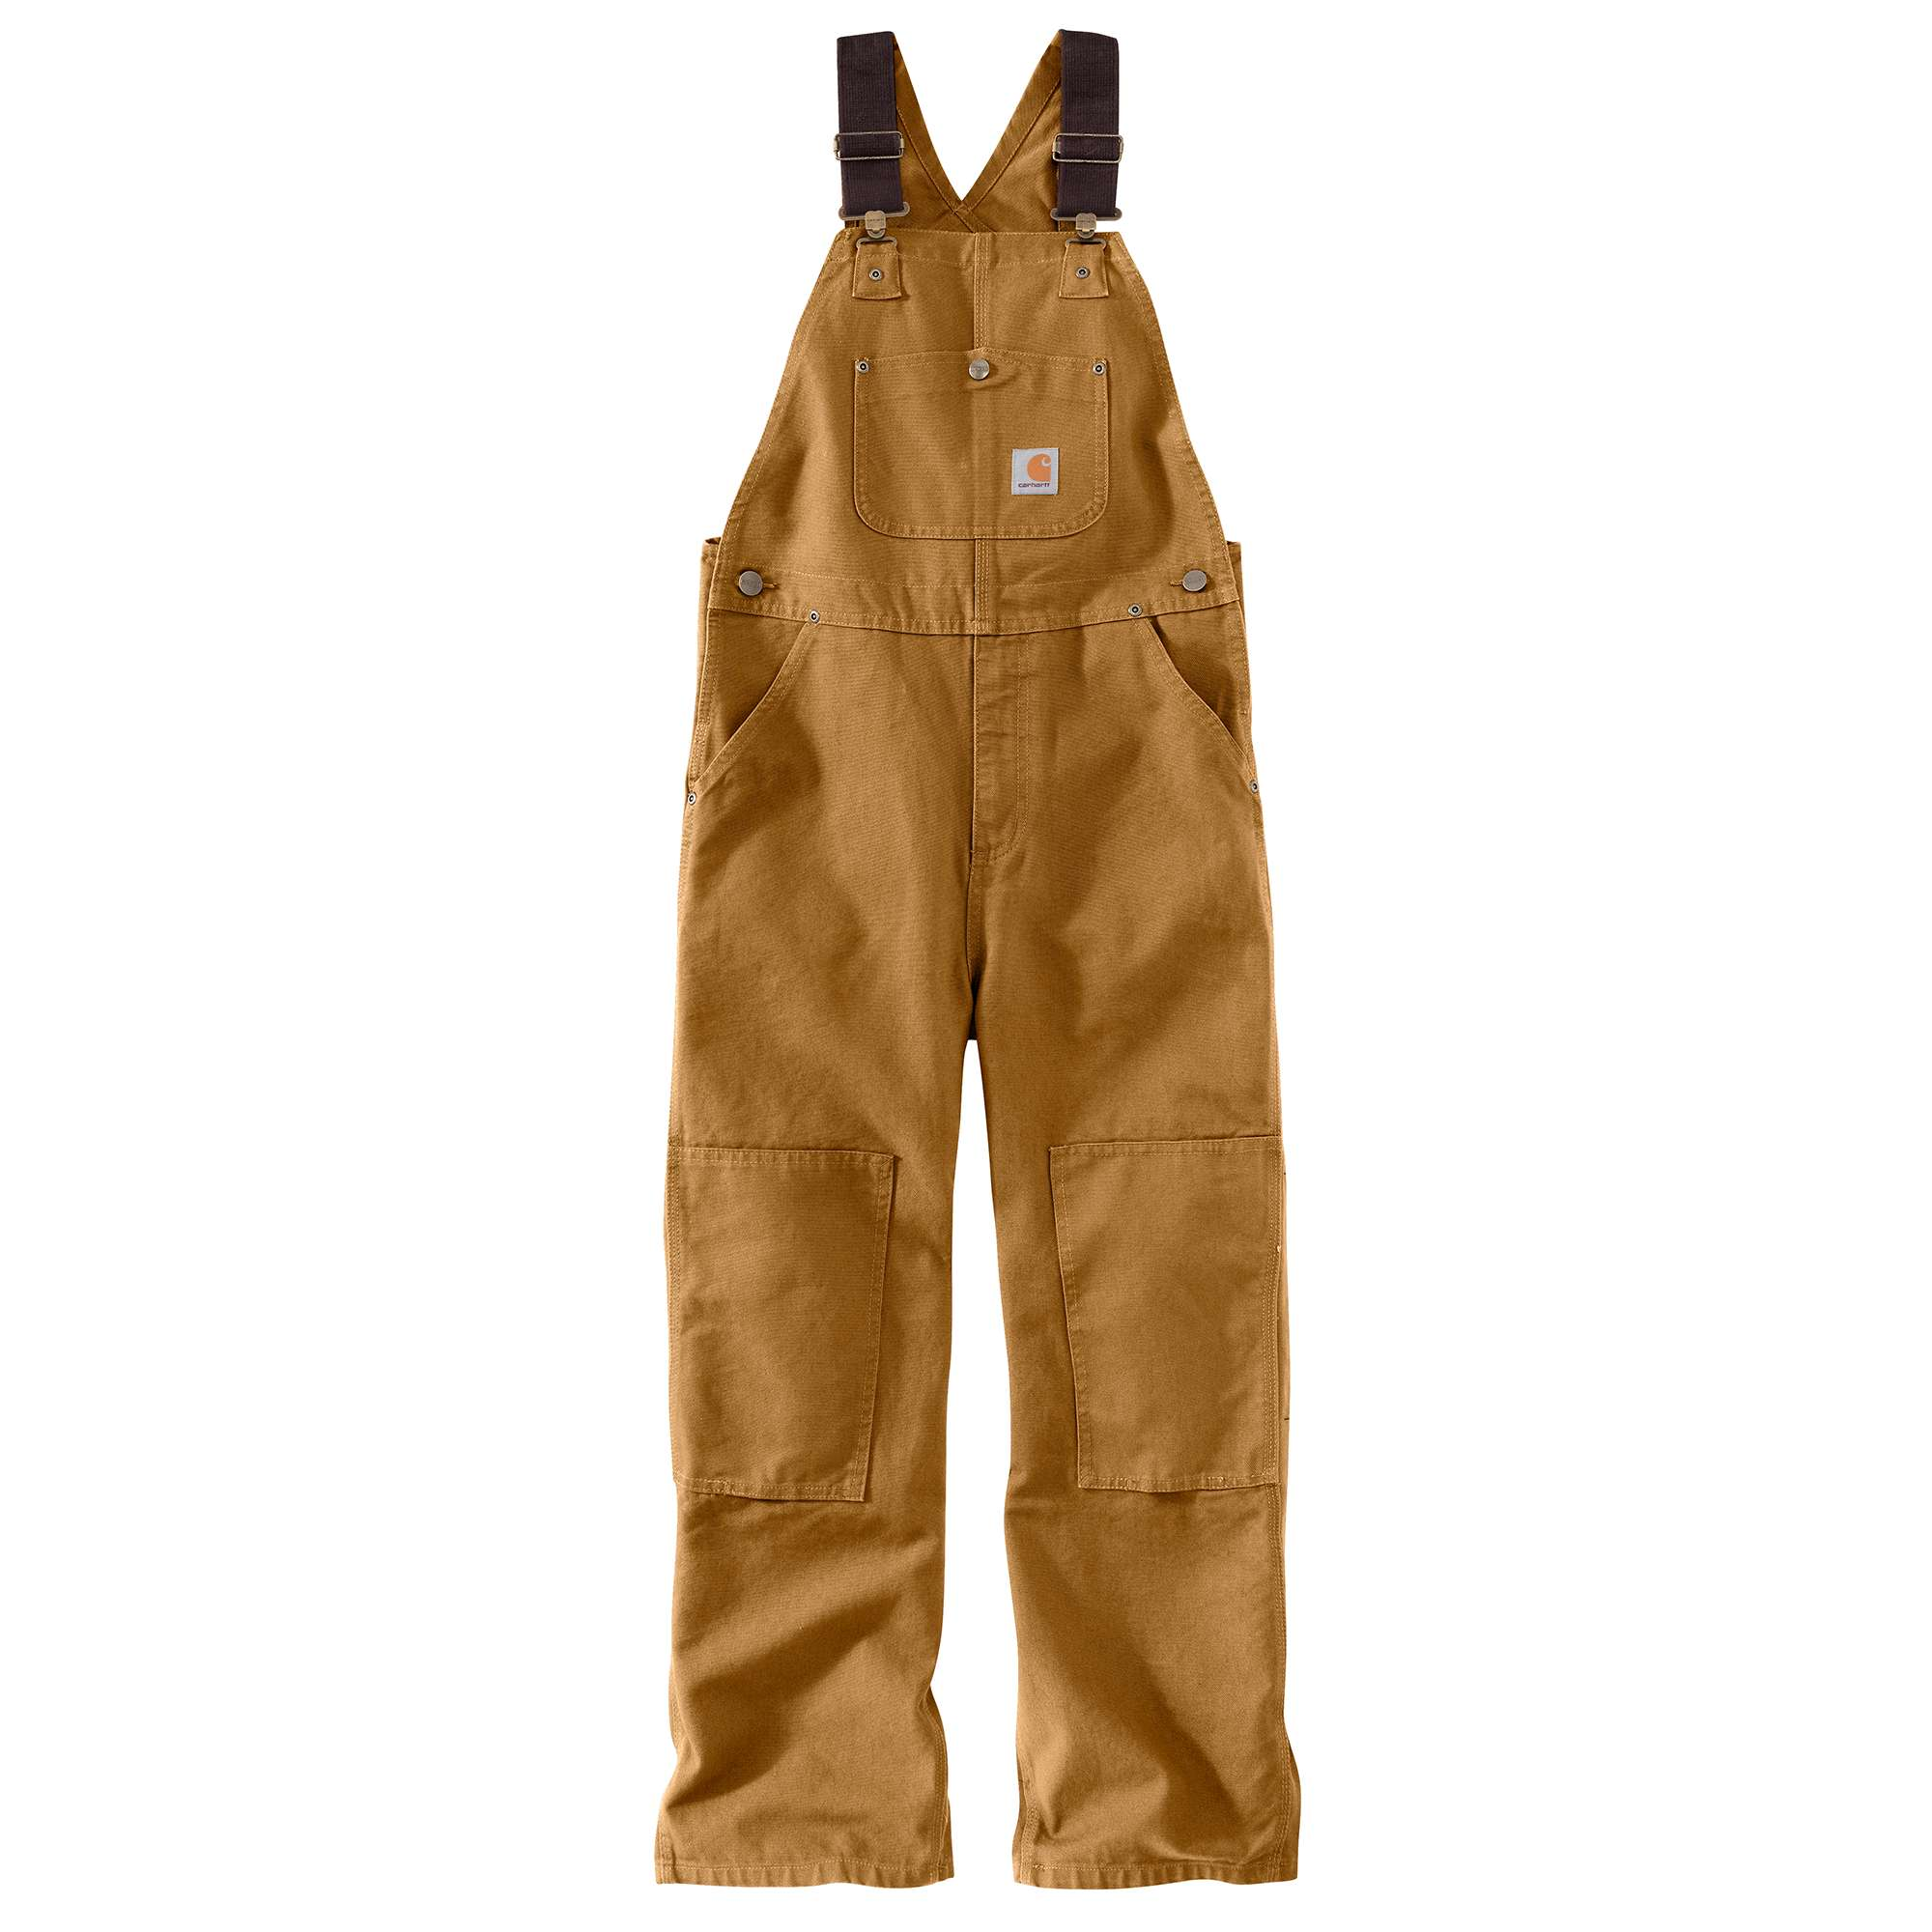 Carhartt Duck Washed Bib Overall Sizes 8-16